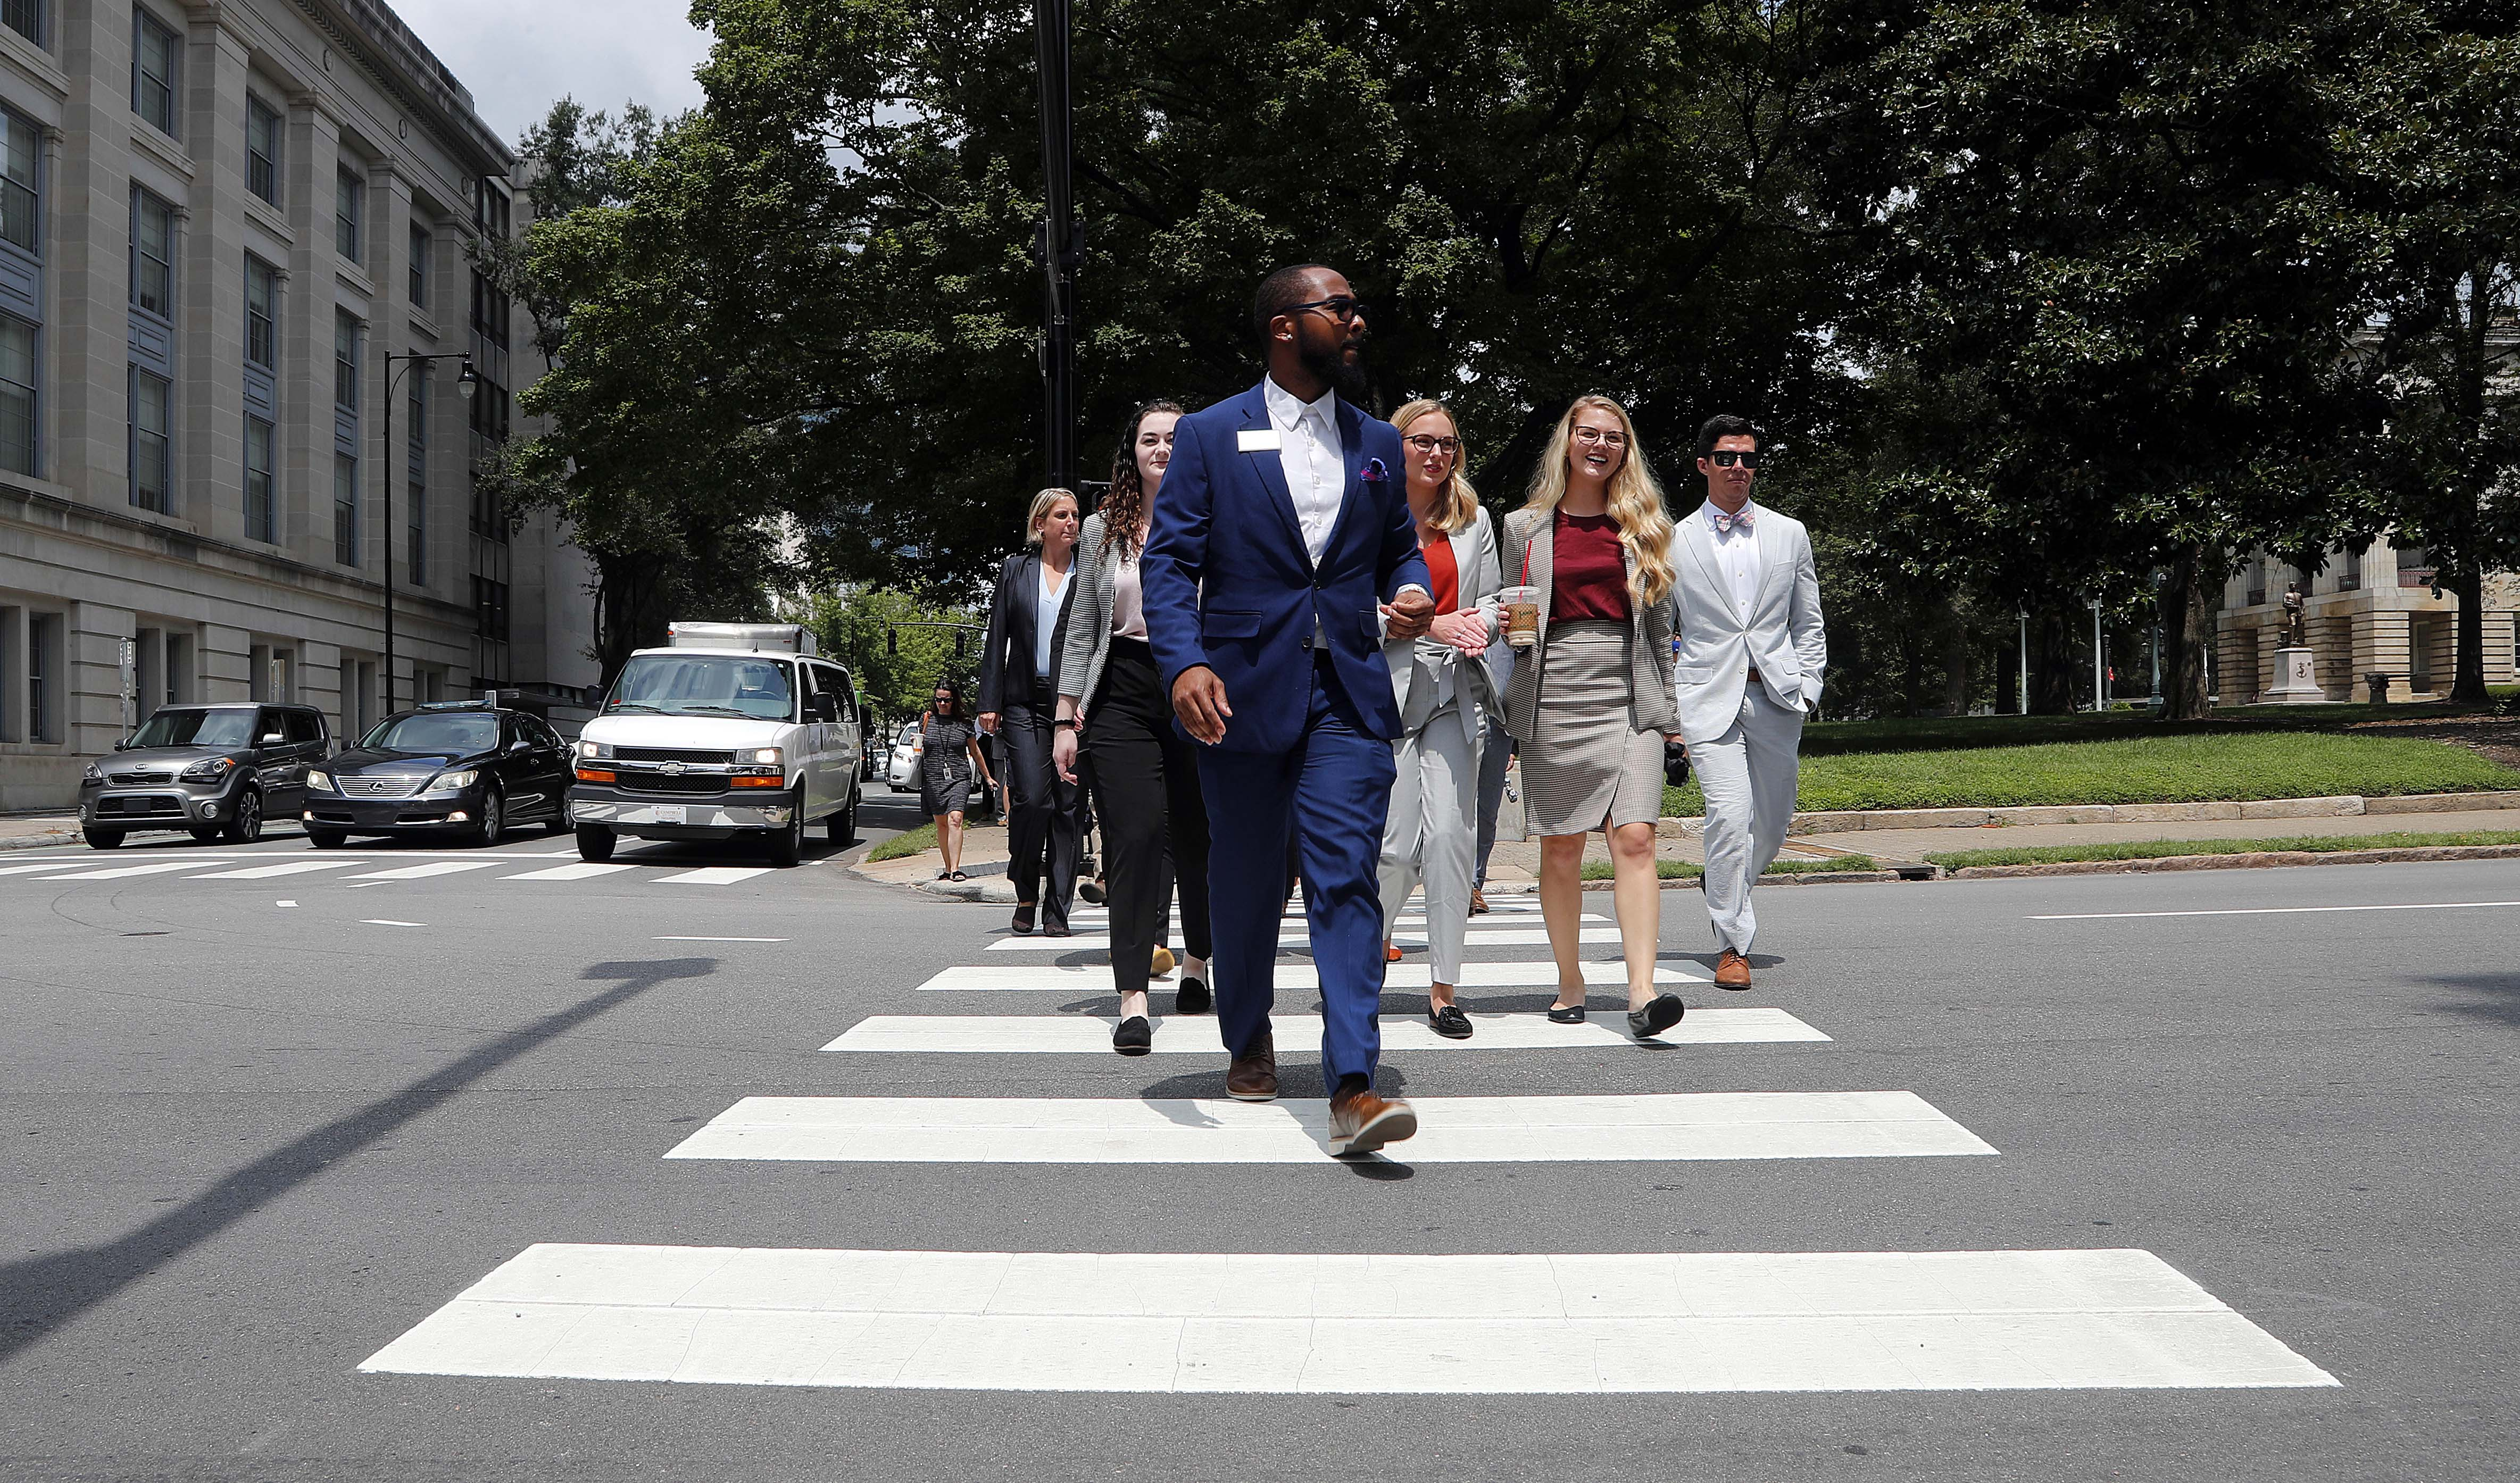 Photo of law students walking across a street on a crosswalk during the Dean's Court Crawl during orientation